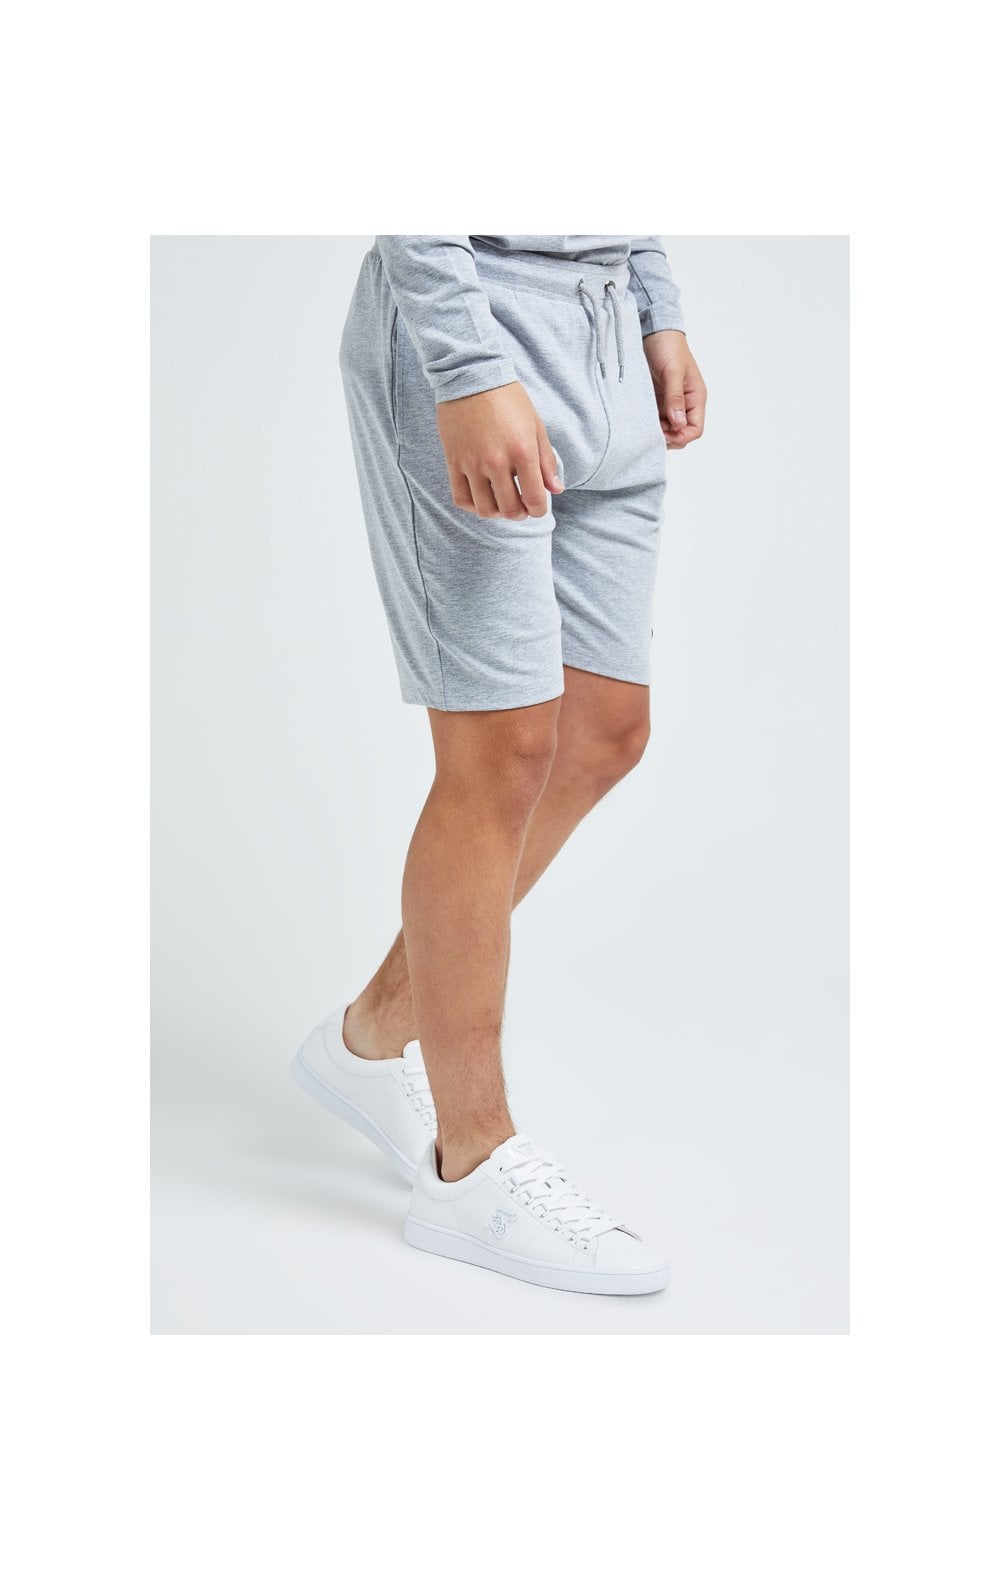 Illusive London Core Jersey Shorts - Grey Marl (2)